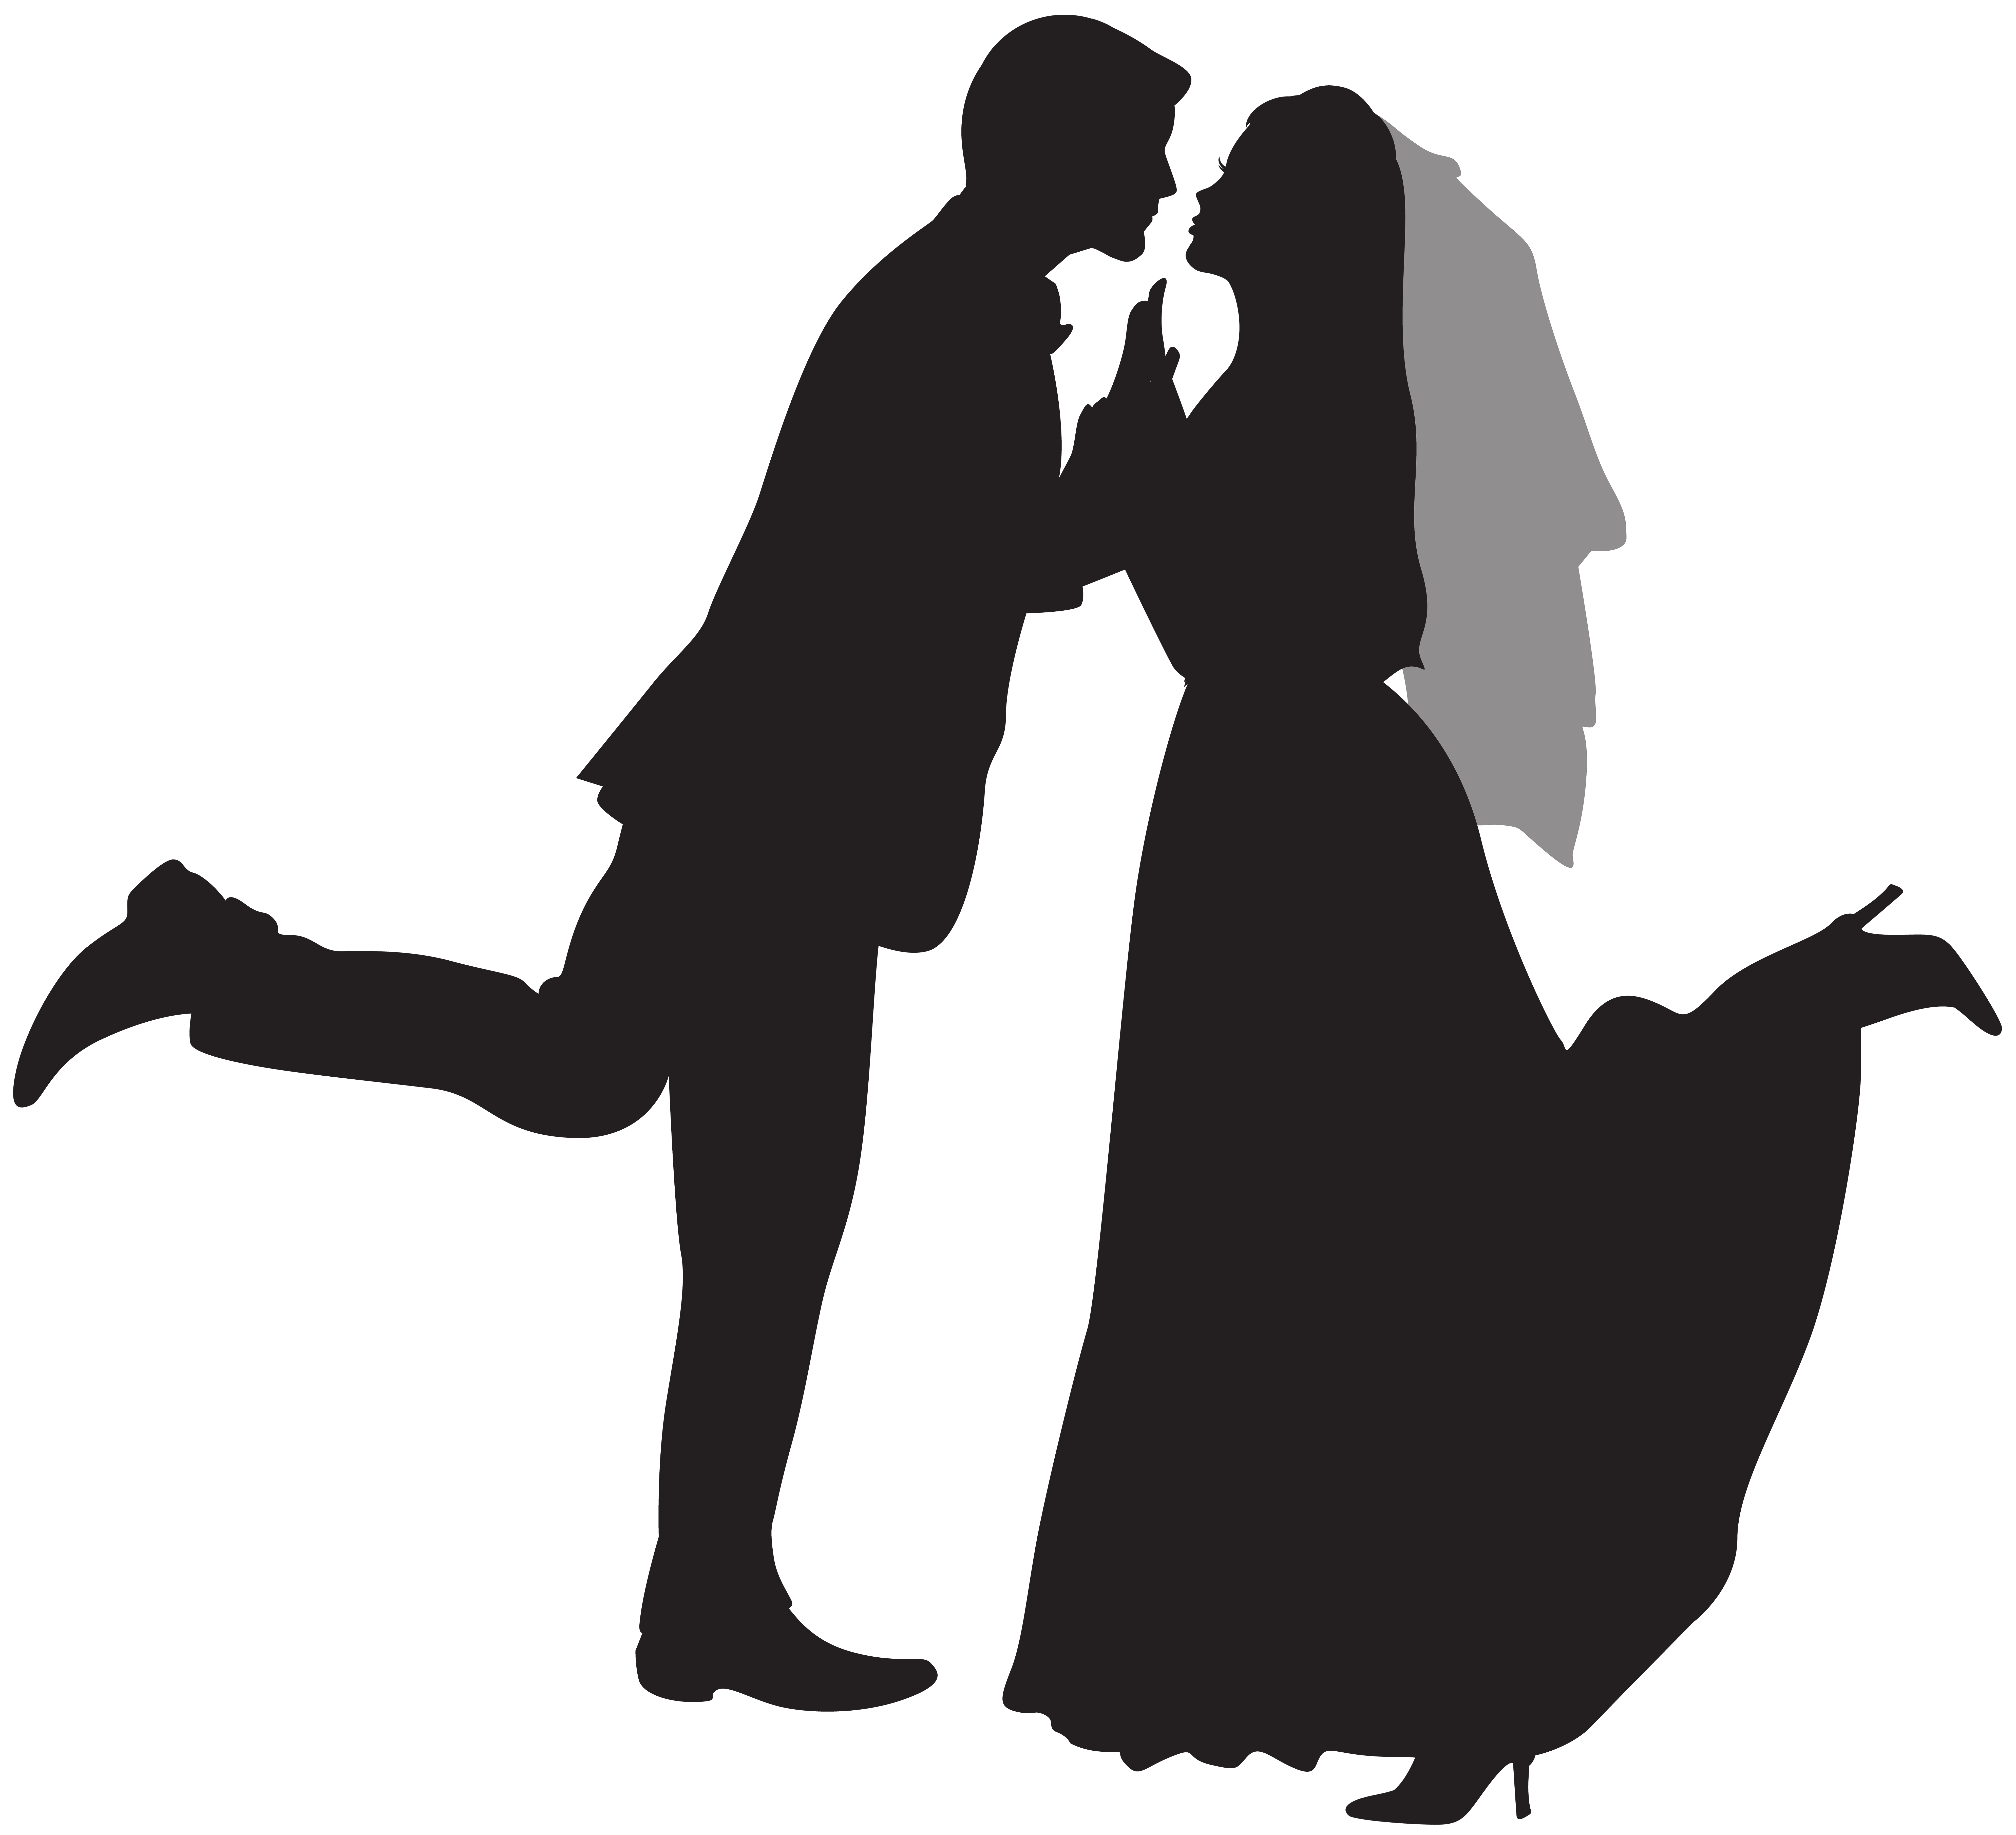 Clipart wedding person. Silhouette couple png clip